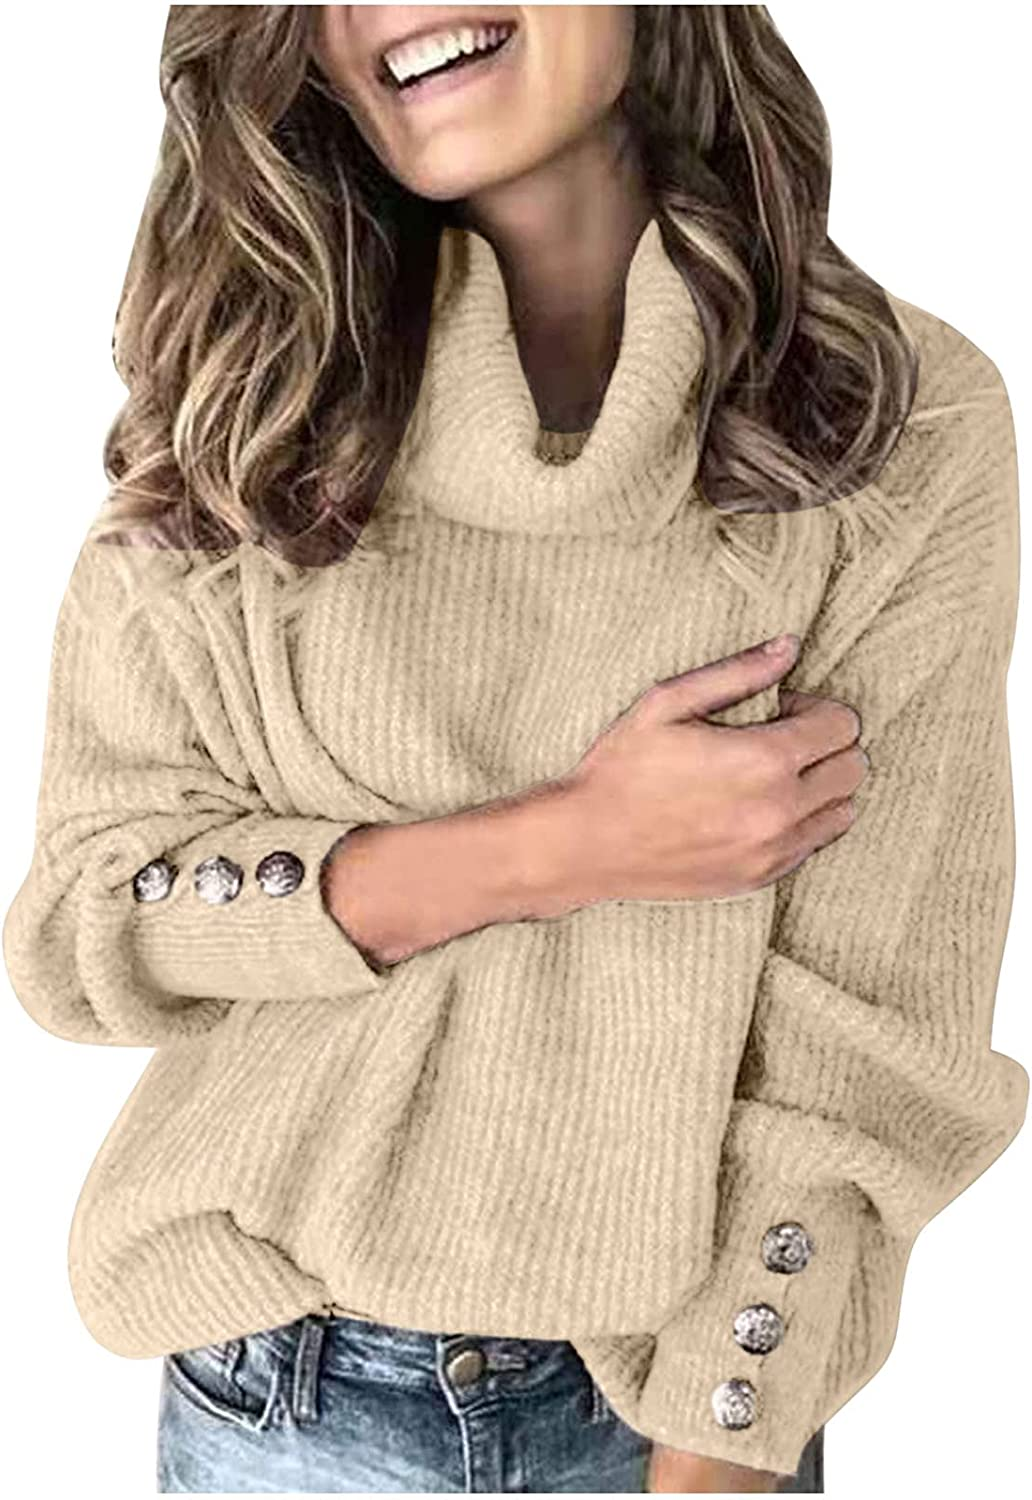 Women Turtleneck Solid Sweaters,Vintage Oversized Trendy Pullover for Work,Fall Long Sleeve Lightweight Knit Jumper